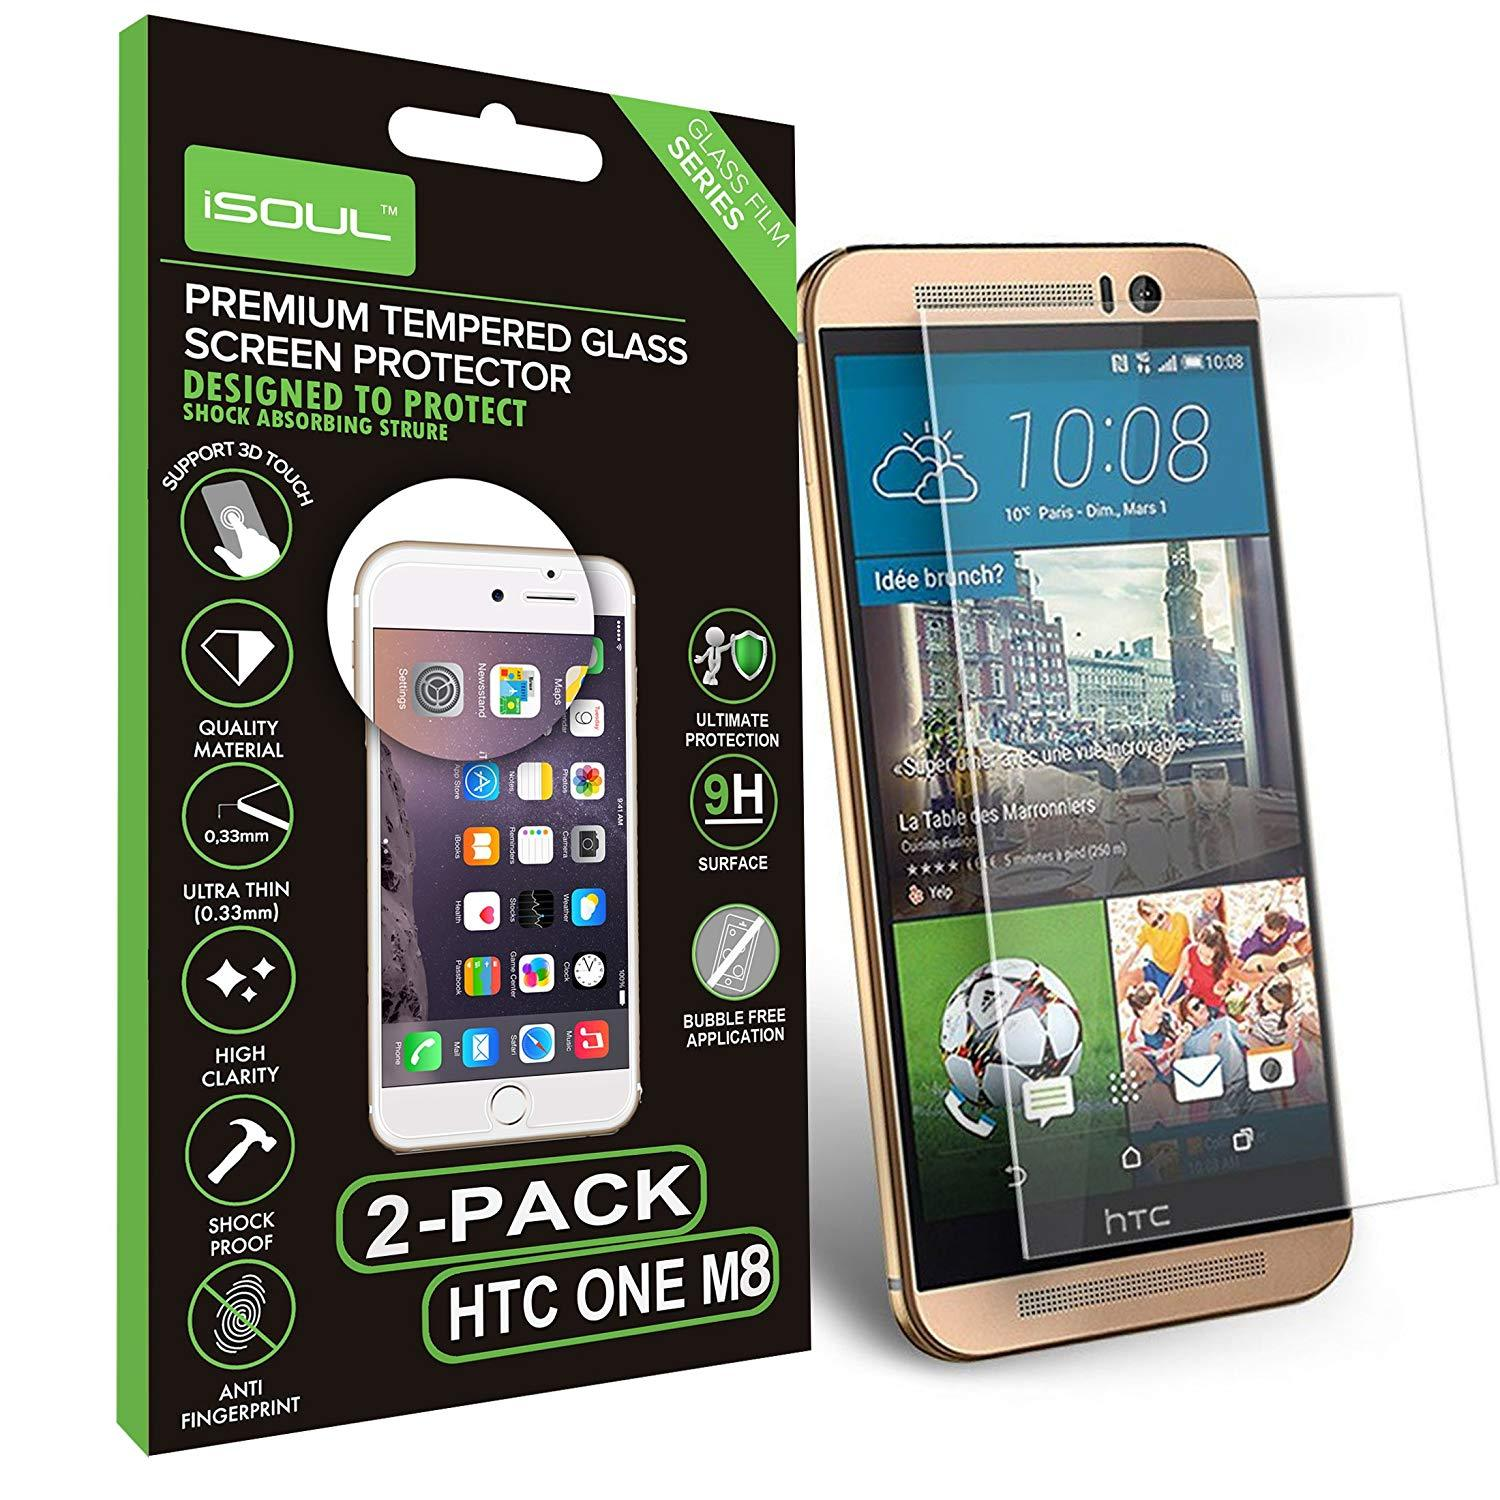 2x iSOUL Premium HTC One M8 Screen Protector Tempered Glass Ultra Slim by  iSOUL